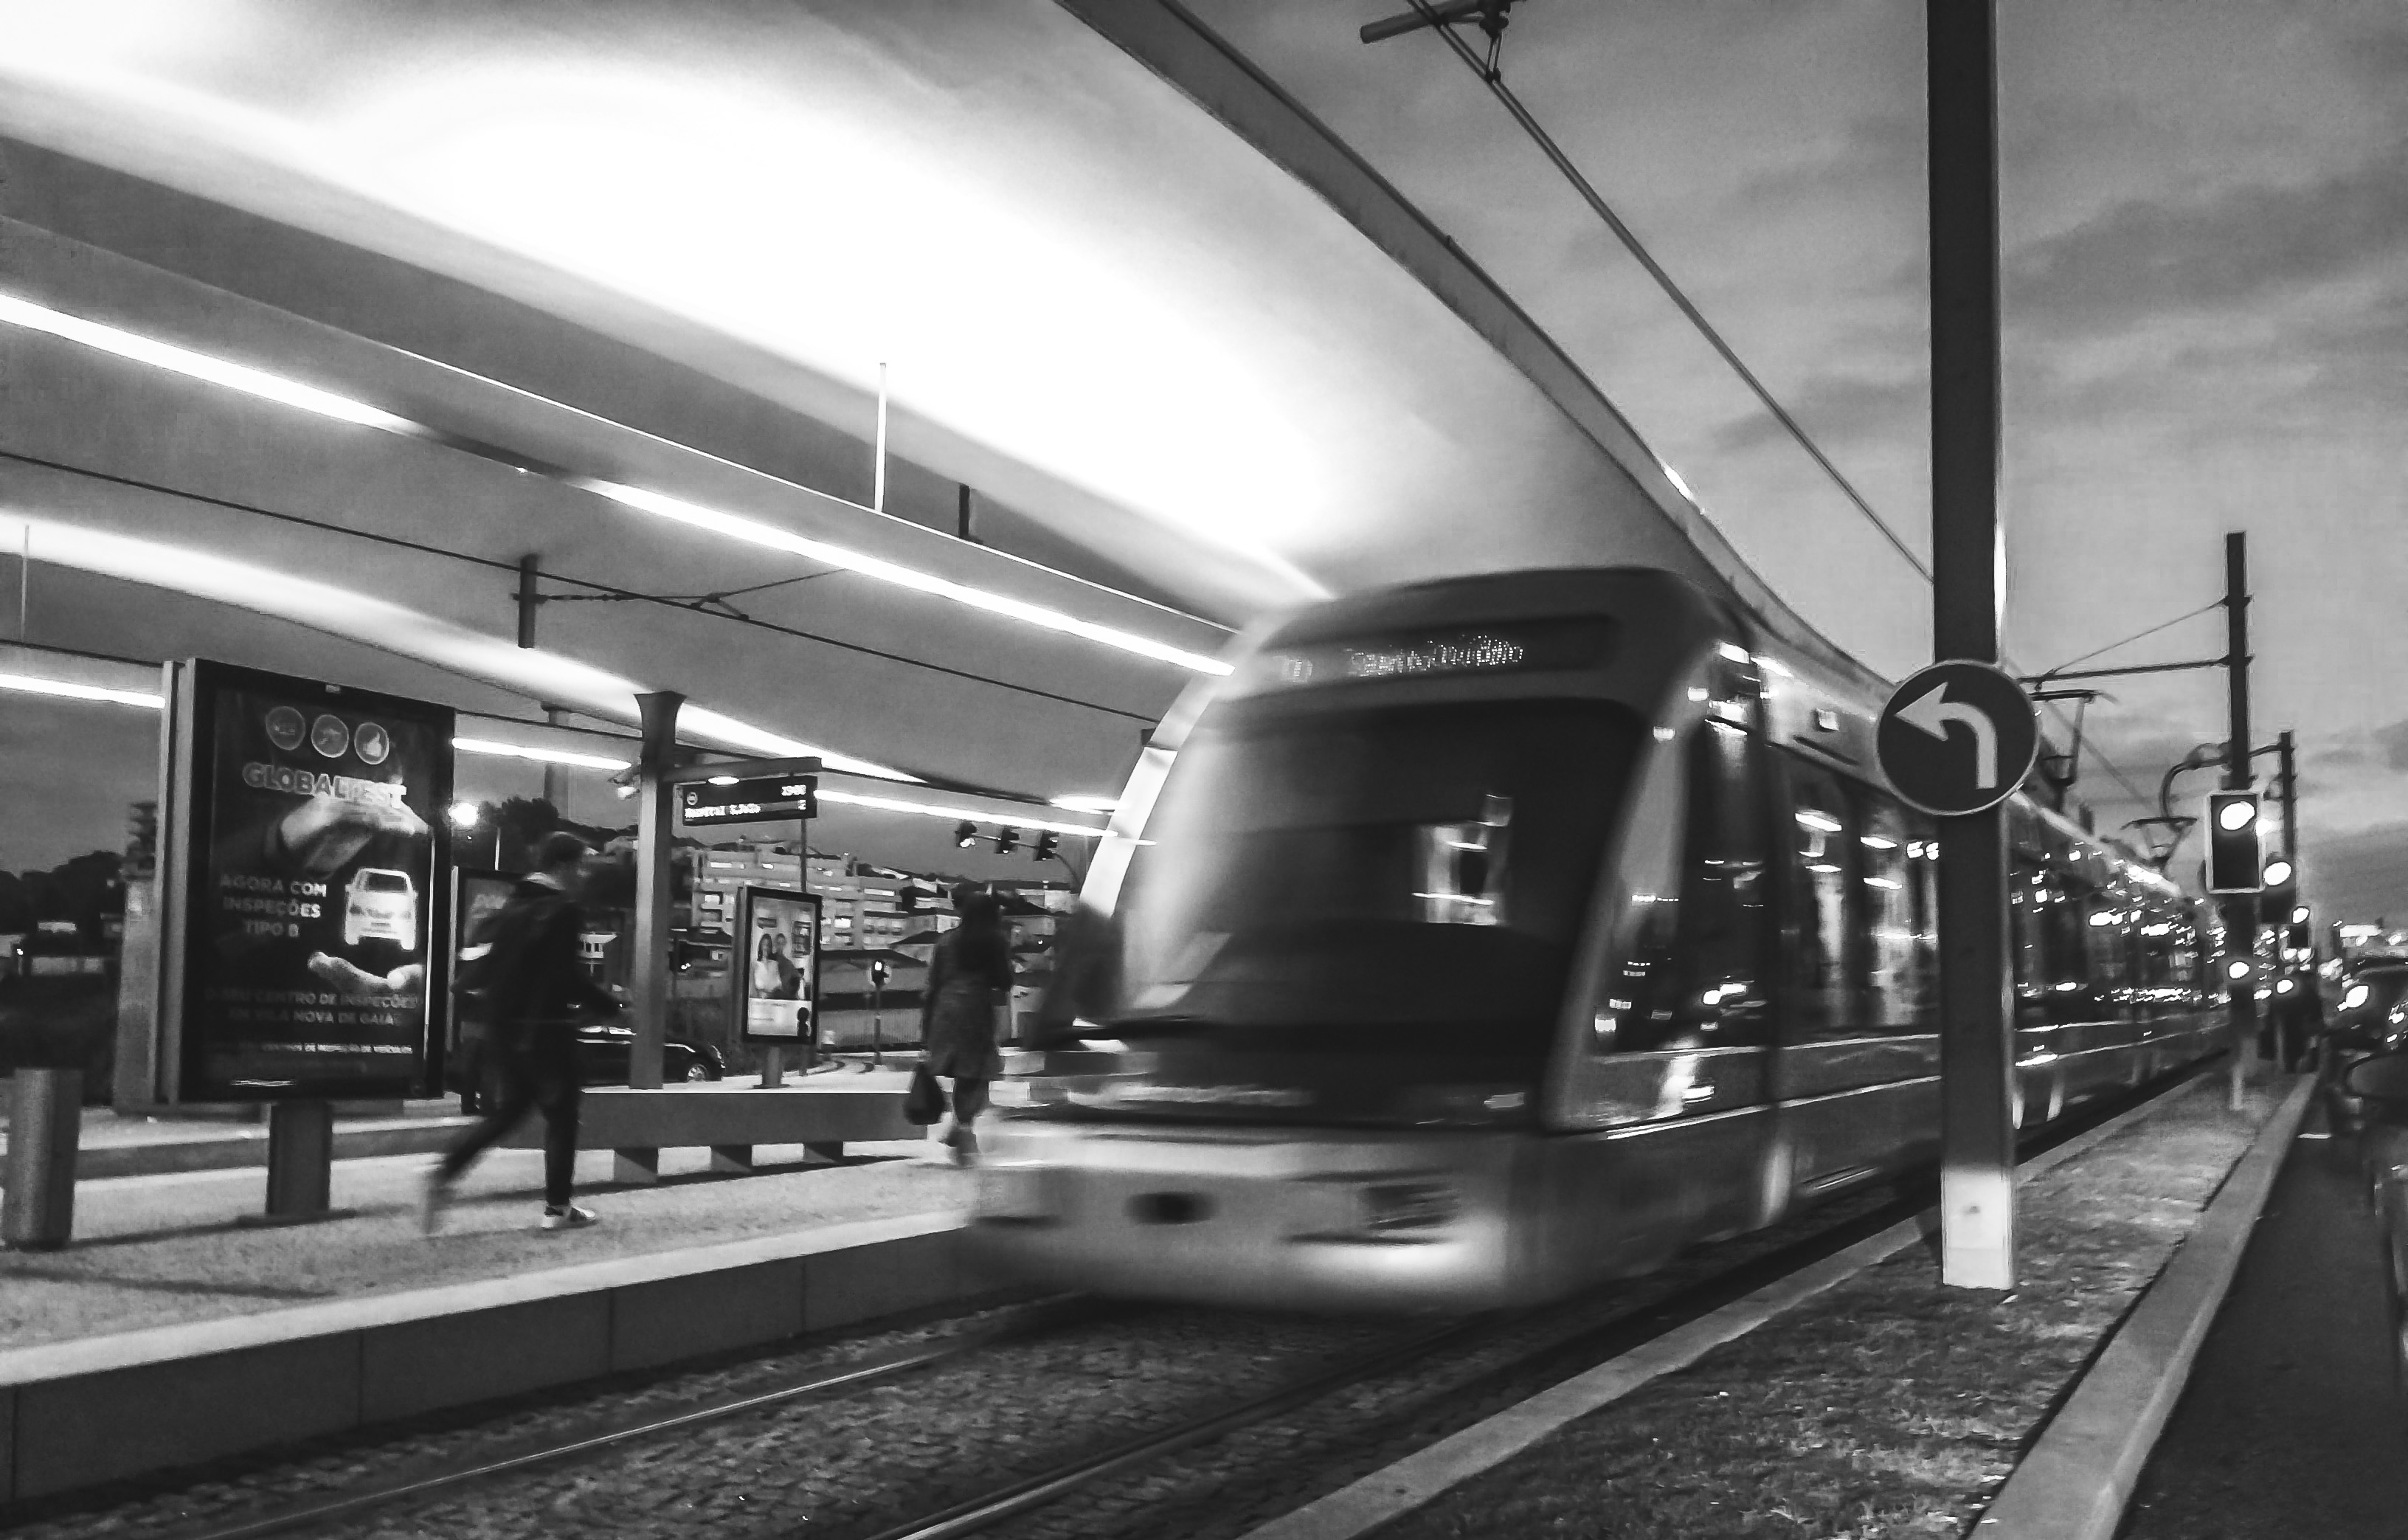 Beautiful Iphone 5 Wallpapers Timelapse Photo Of Greyscale Train Passing By 183 Free Stock